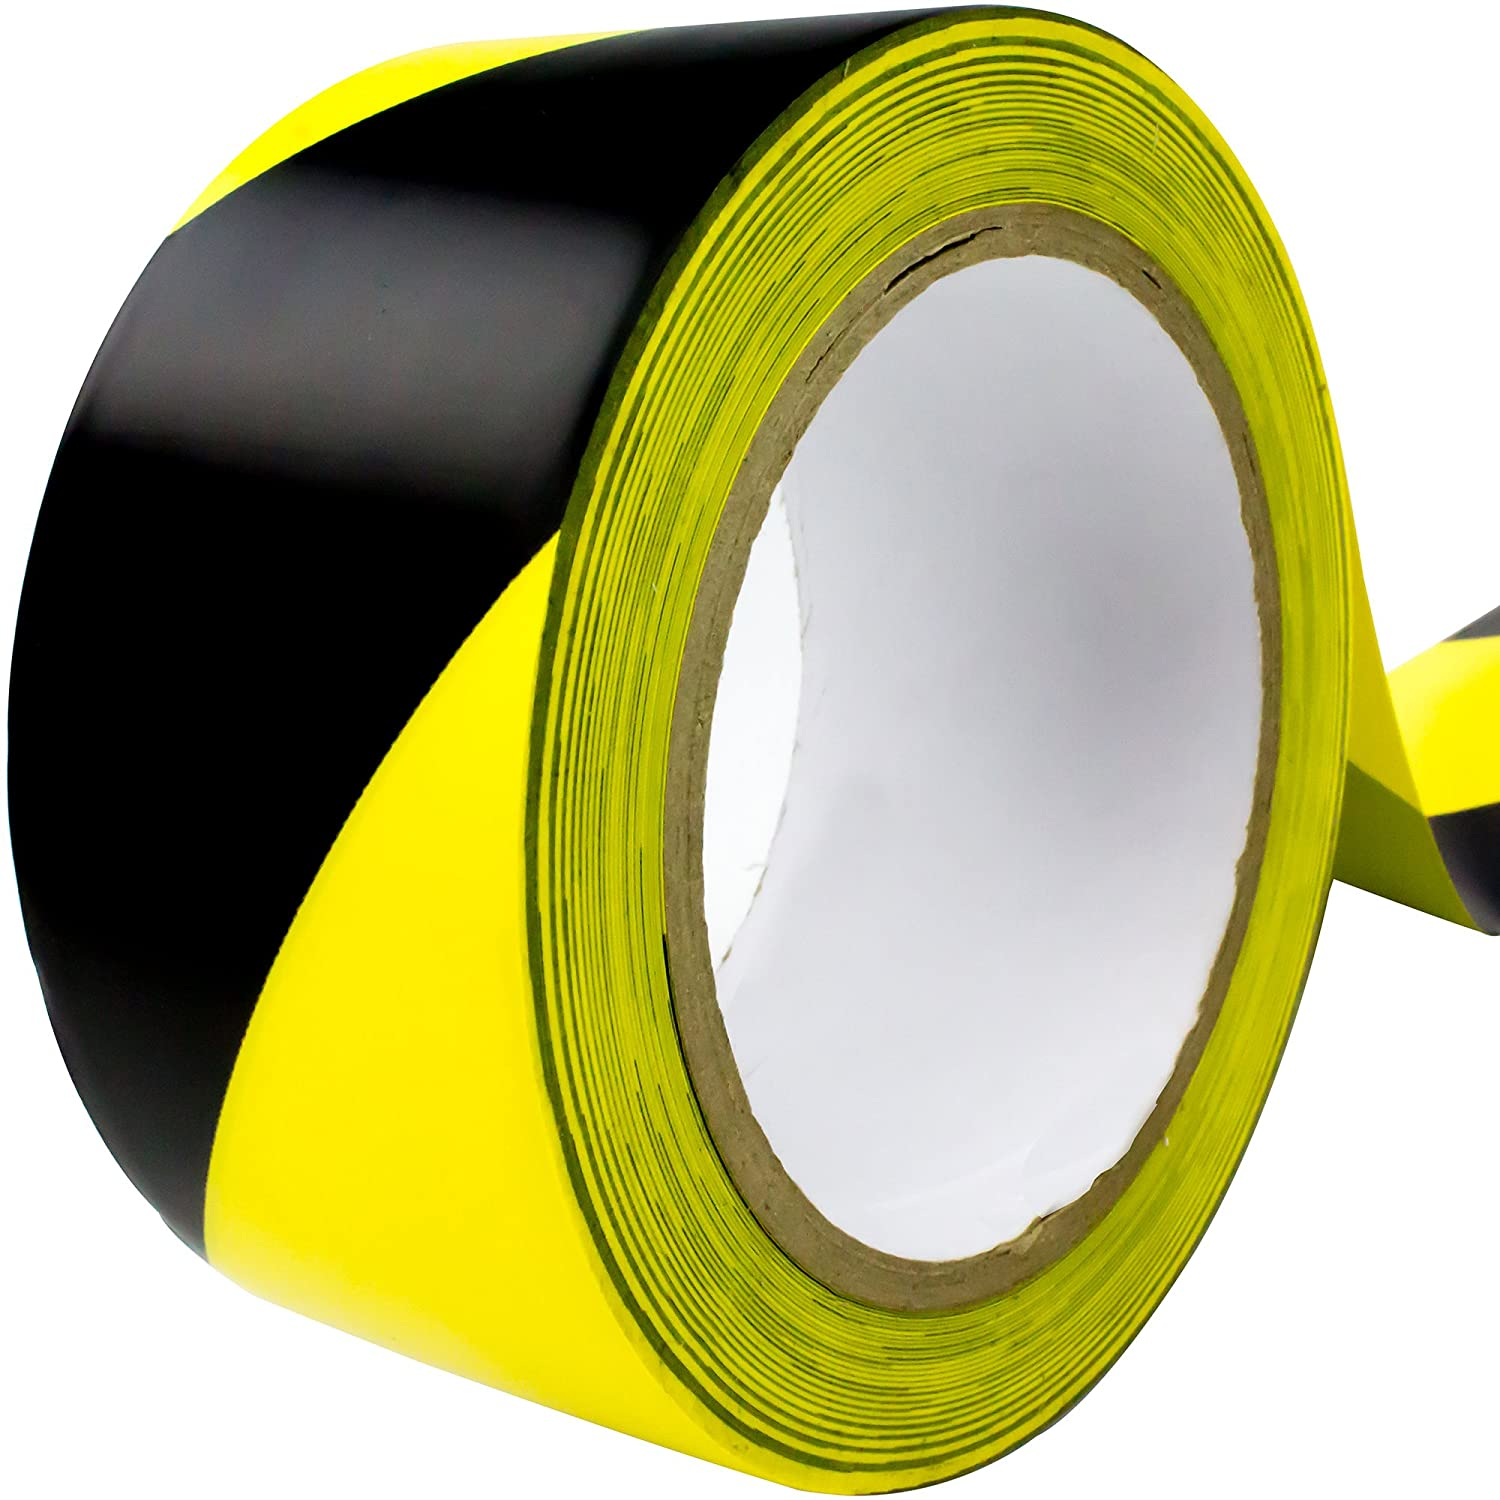 Double Roll of Ultra Adhesive Black Yellow Hazard Tape for Floor Marking. Mark Floors Watch Your Step Areas for Safety with High Visibility Anti Scuff Striped PVC Vinyl by Nova Supply